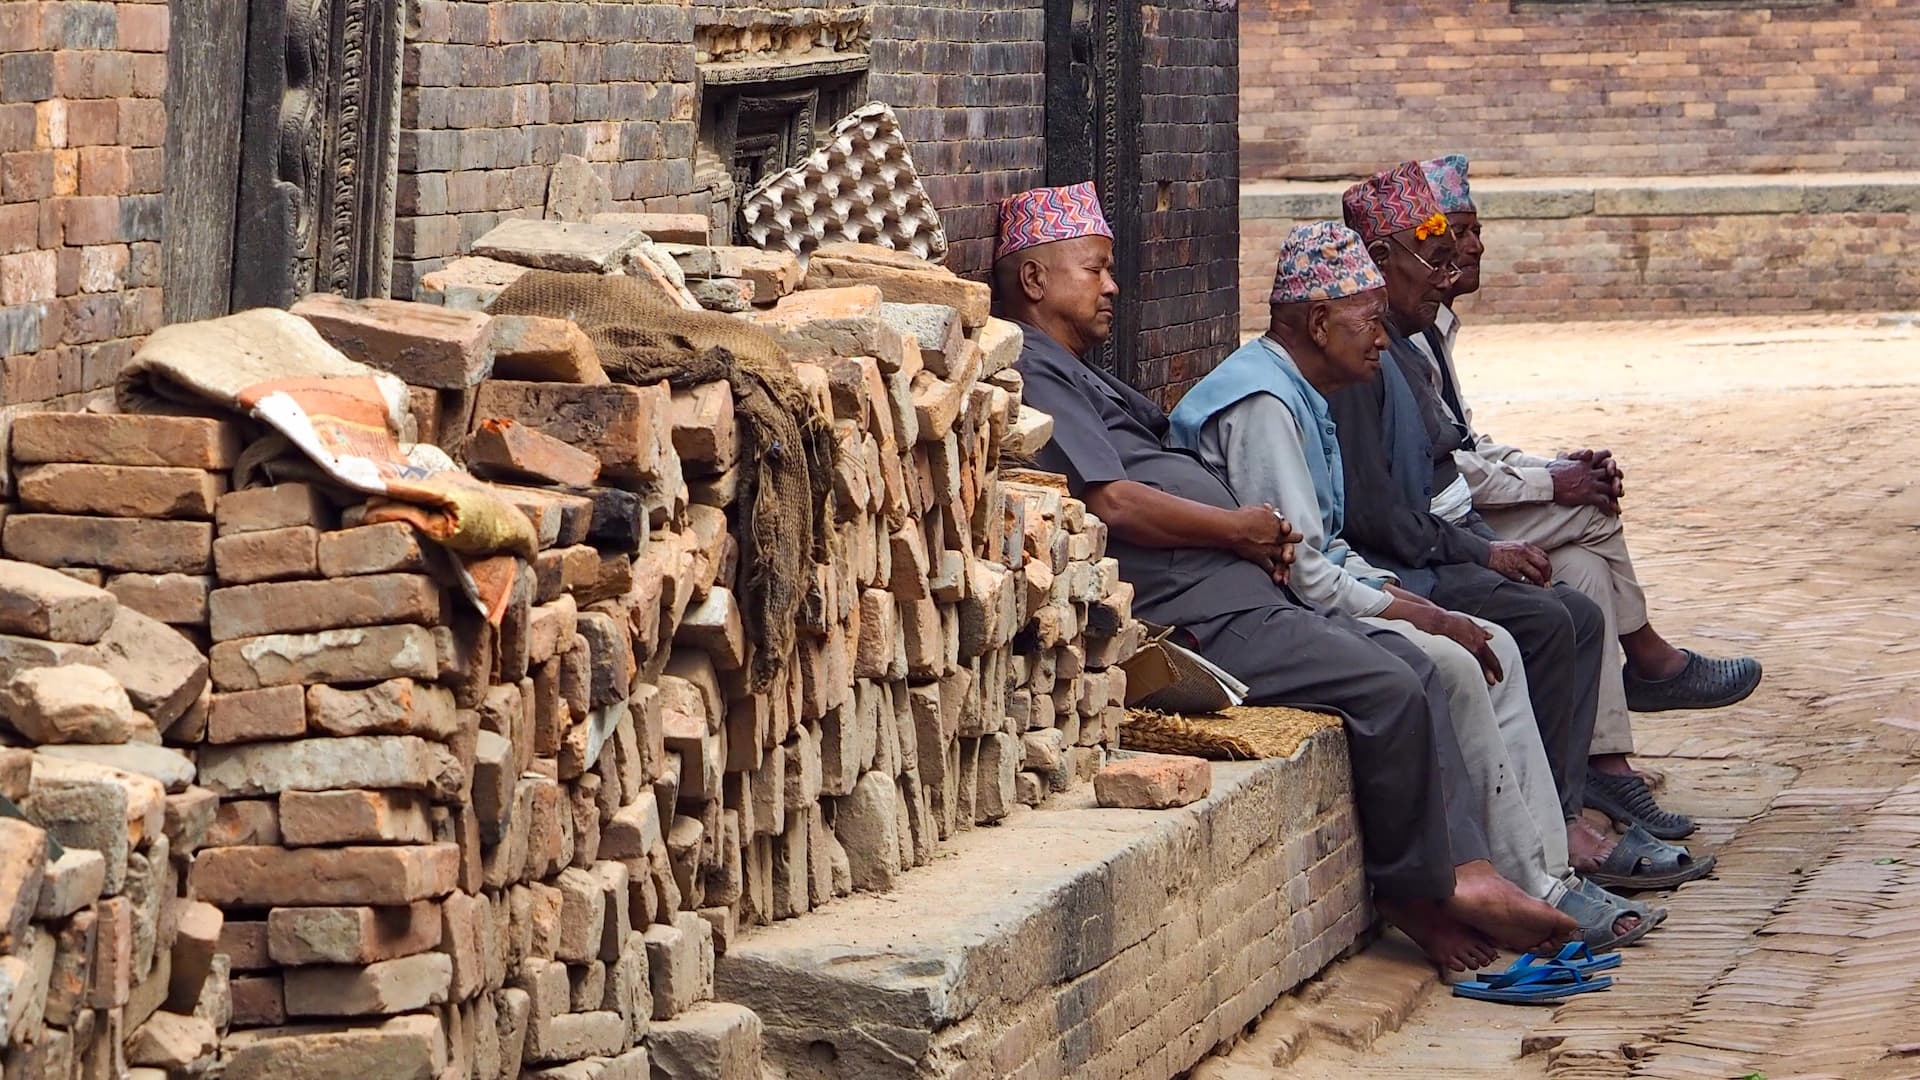 A pile of bricks in the foreground lead to four men sitting at the side of a street